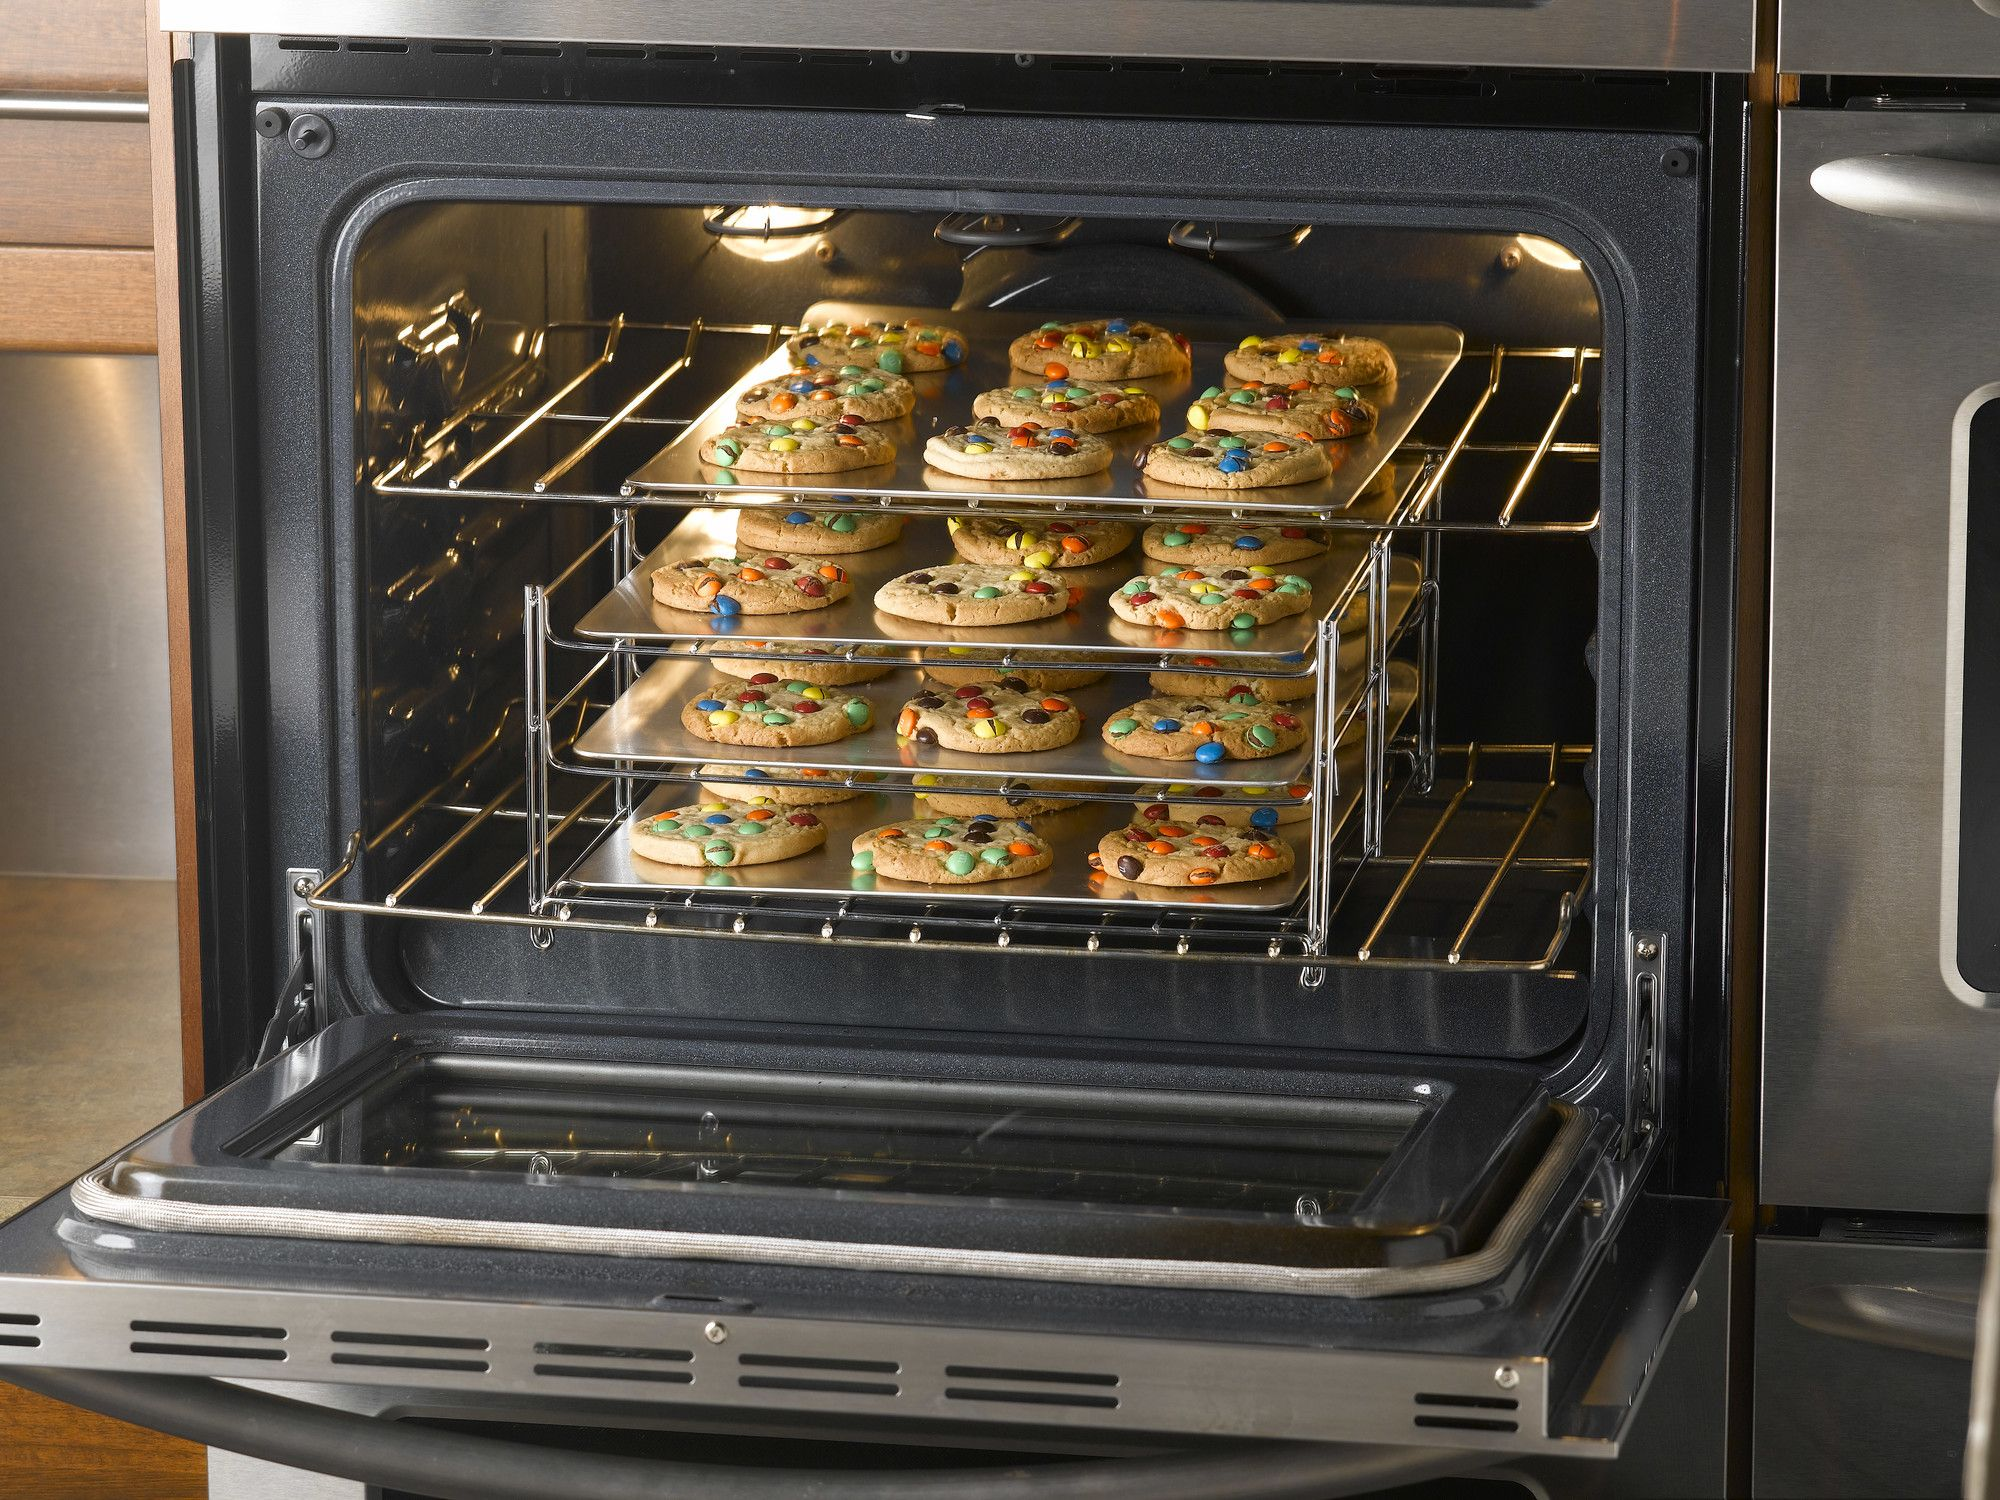 Nifty Home Products Betty Crocker 3 Tier Baking Rack In 2020 Oven Racks Tiered Oven Rack Oven Accessories